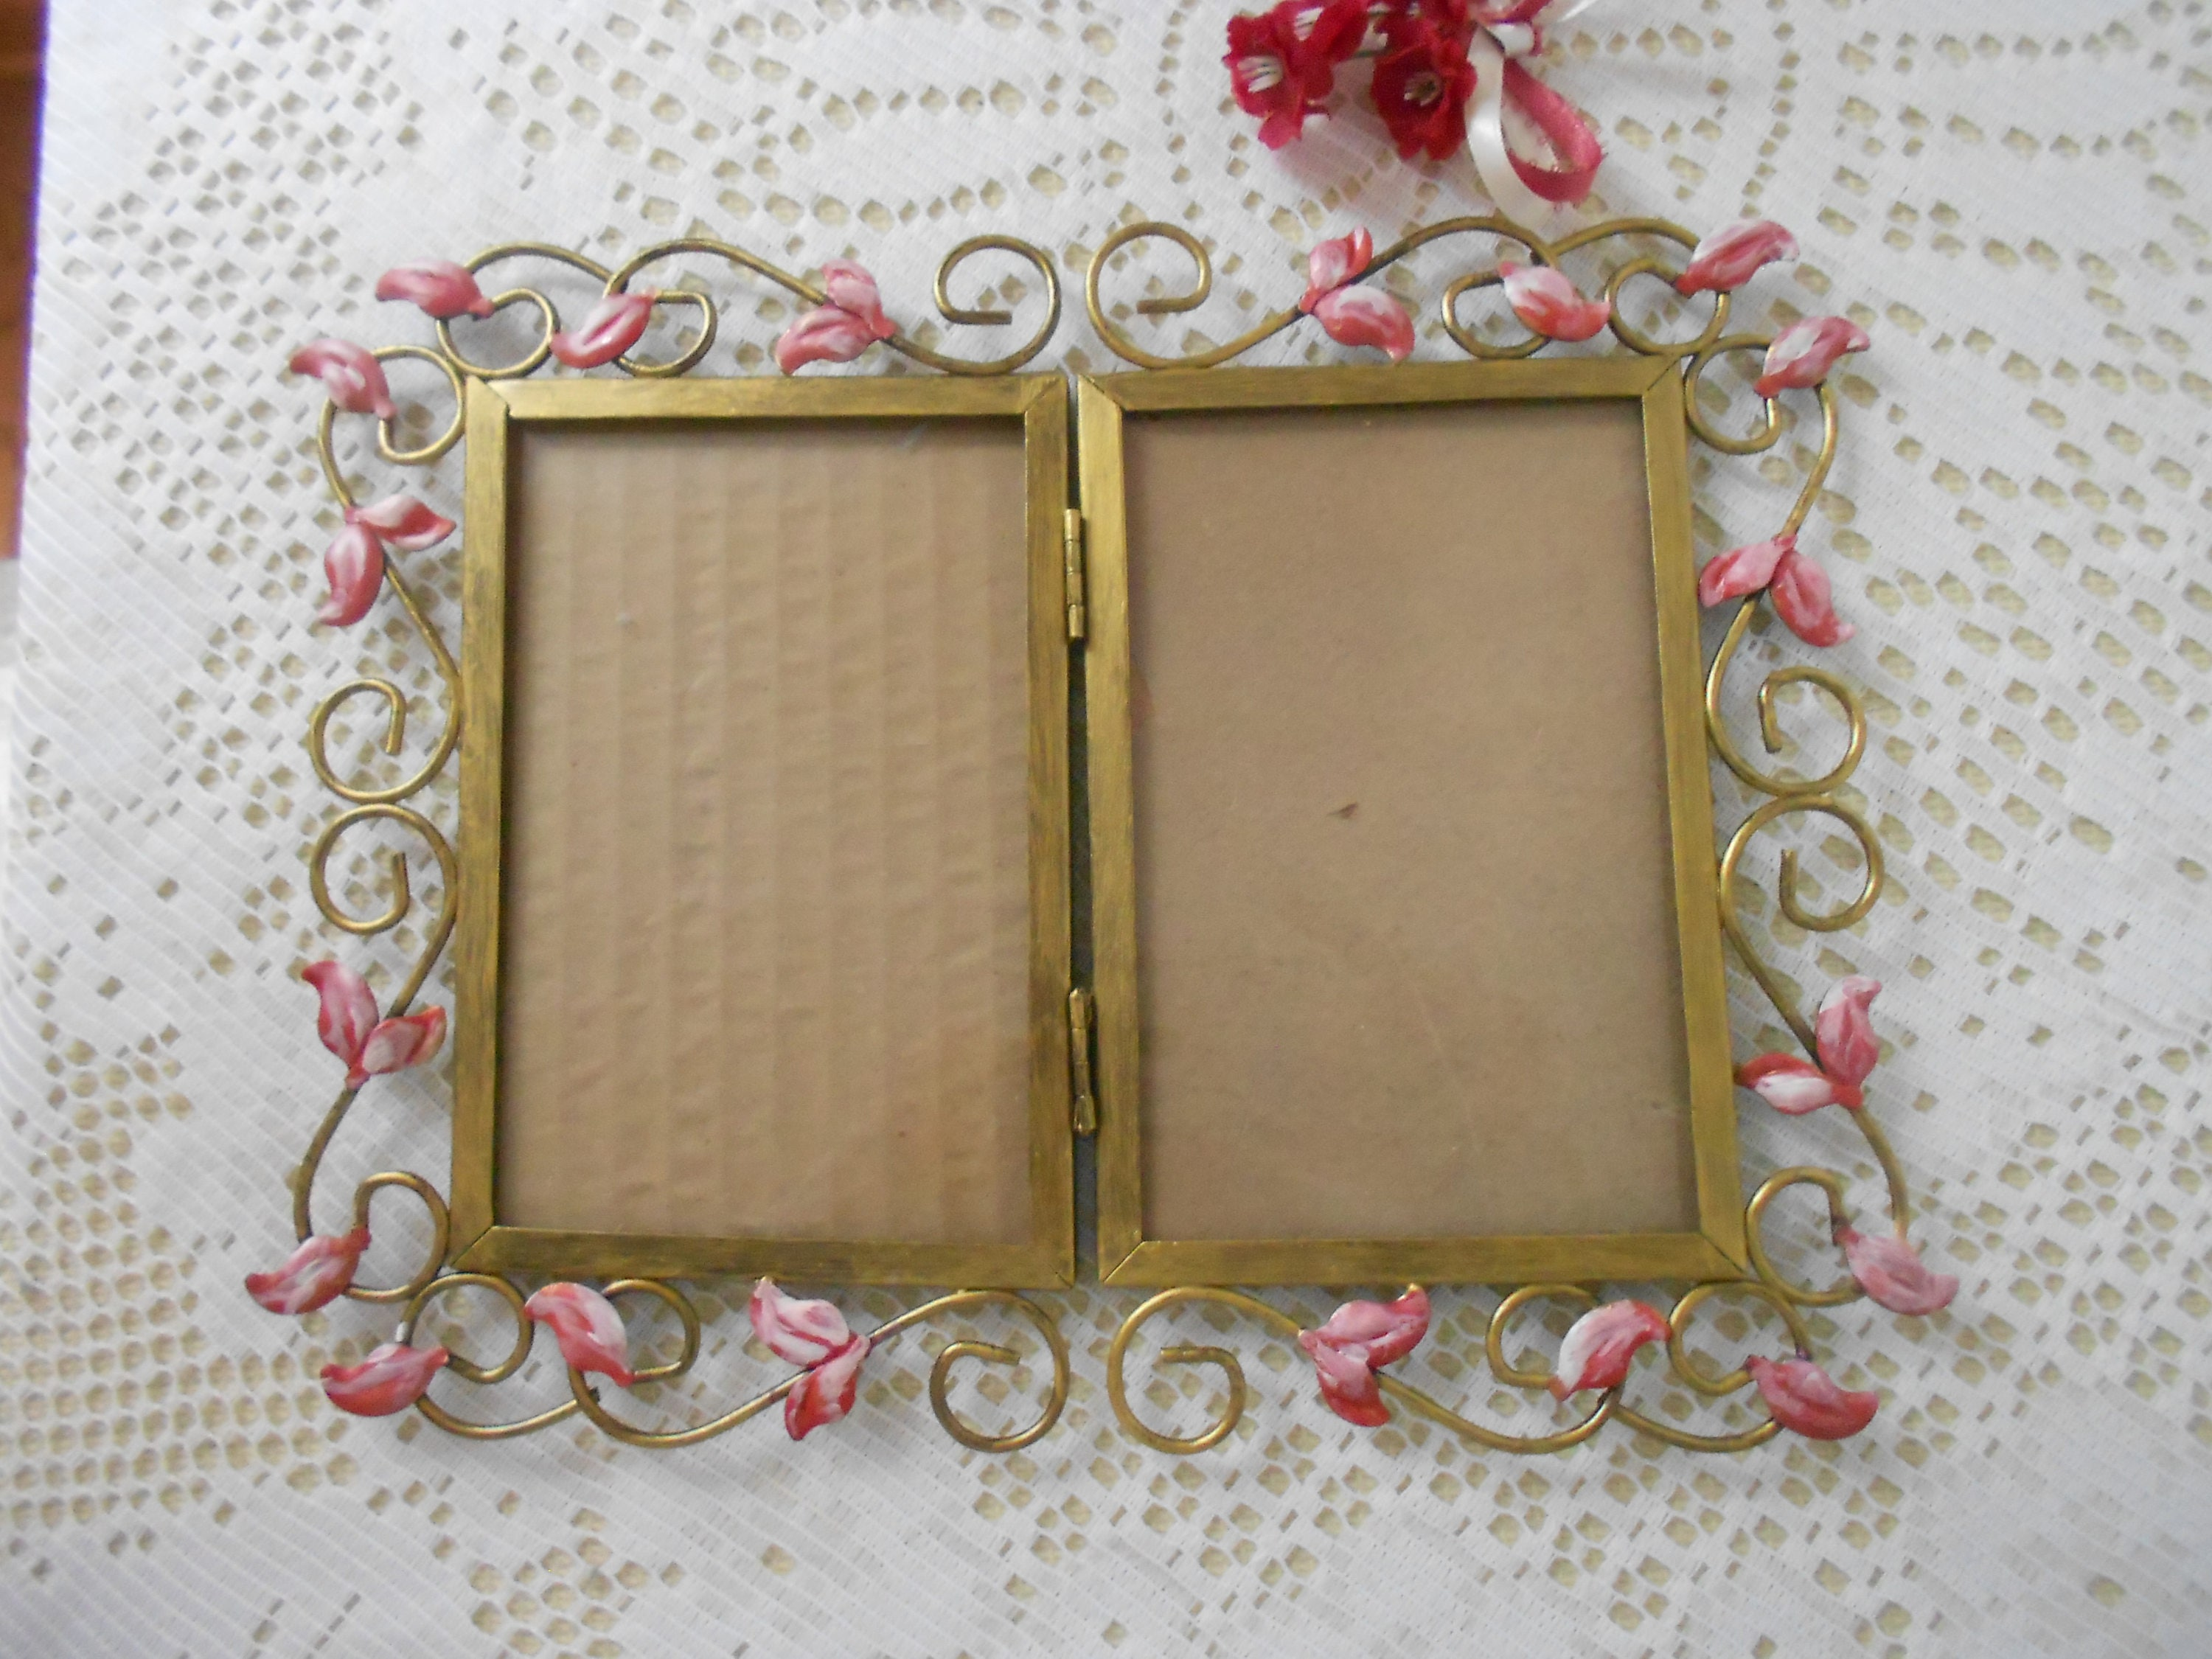 Vintage Gold tone ornate picture frame double hinged with